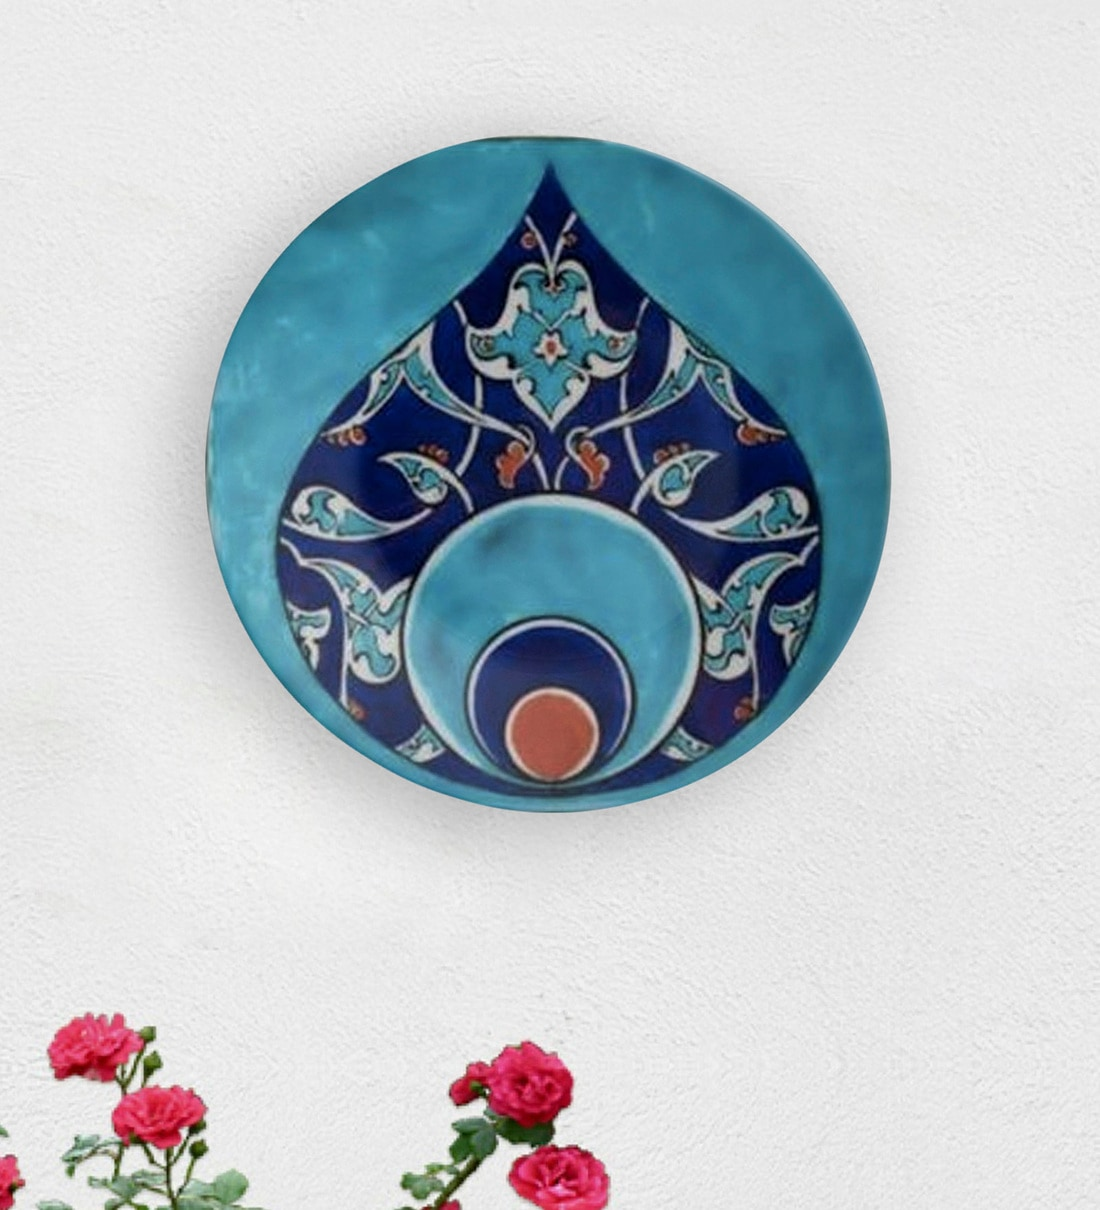 Buy Multicolour Ceramic Turkish Morrocon Tile Decorative Wall Plate By Quirk India Online Wall Plates Wall Art Home Decor Pepperfry Product